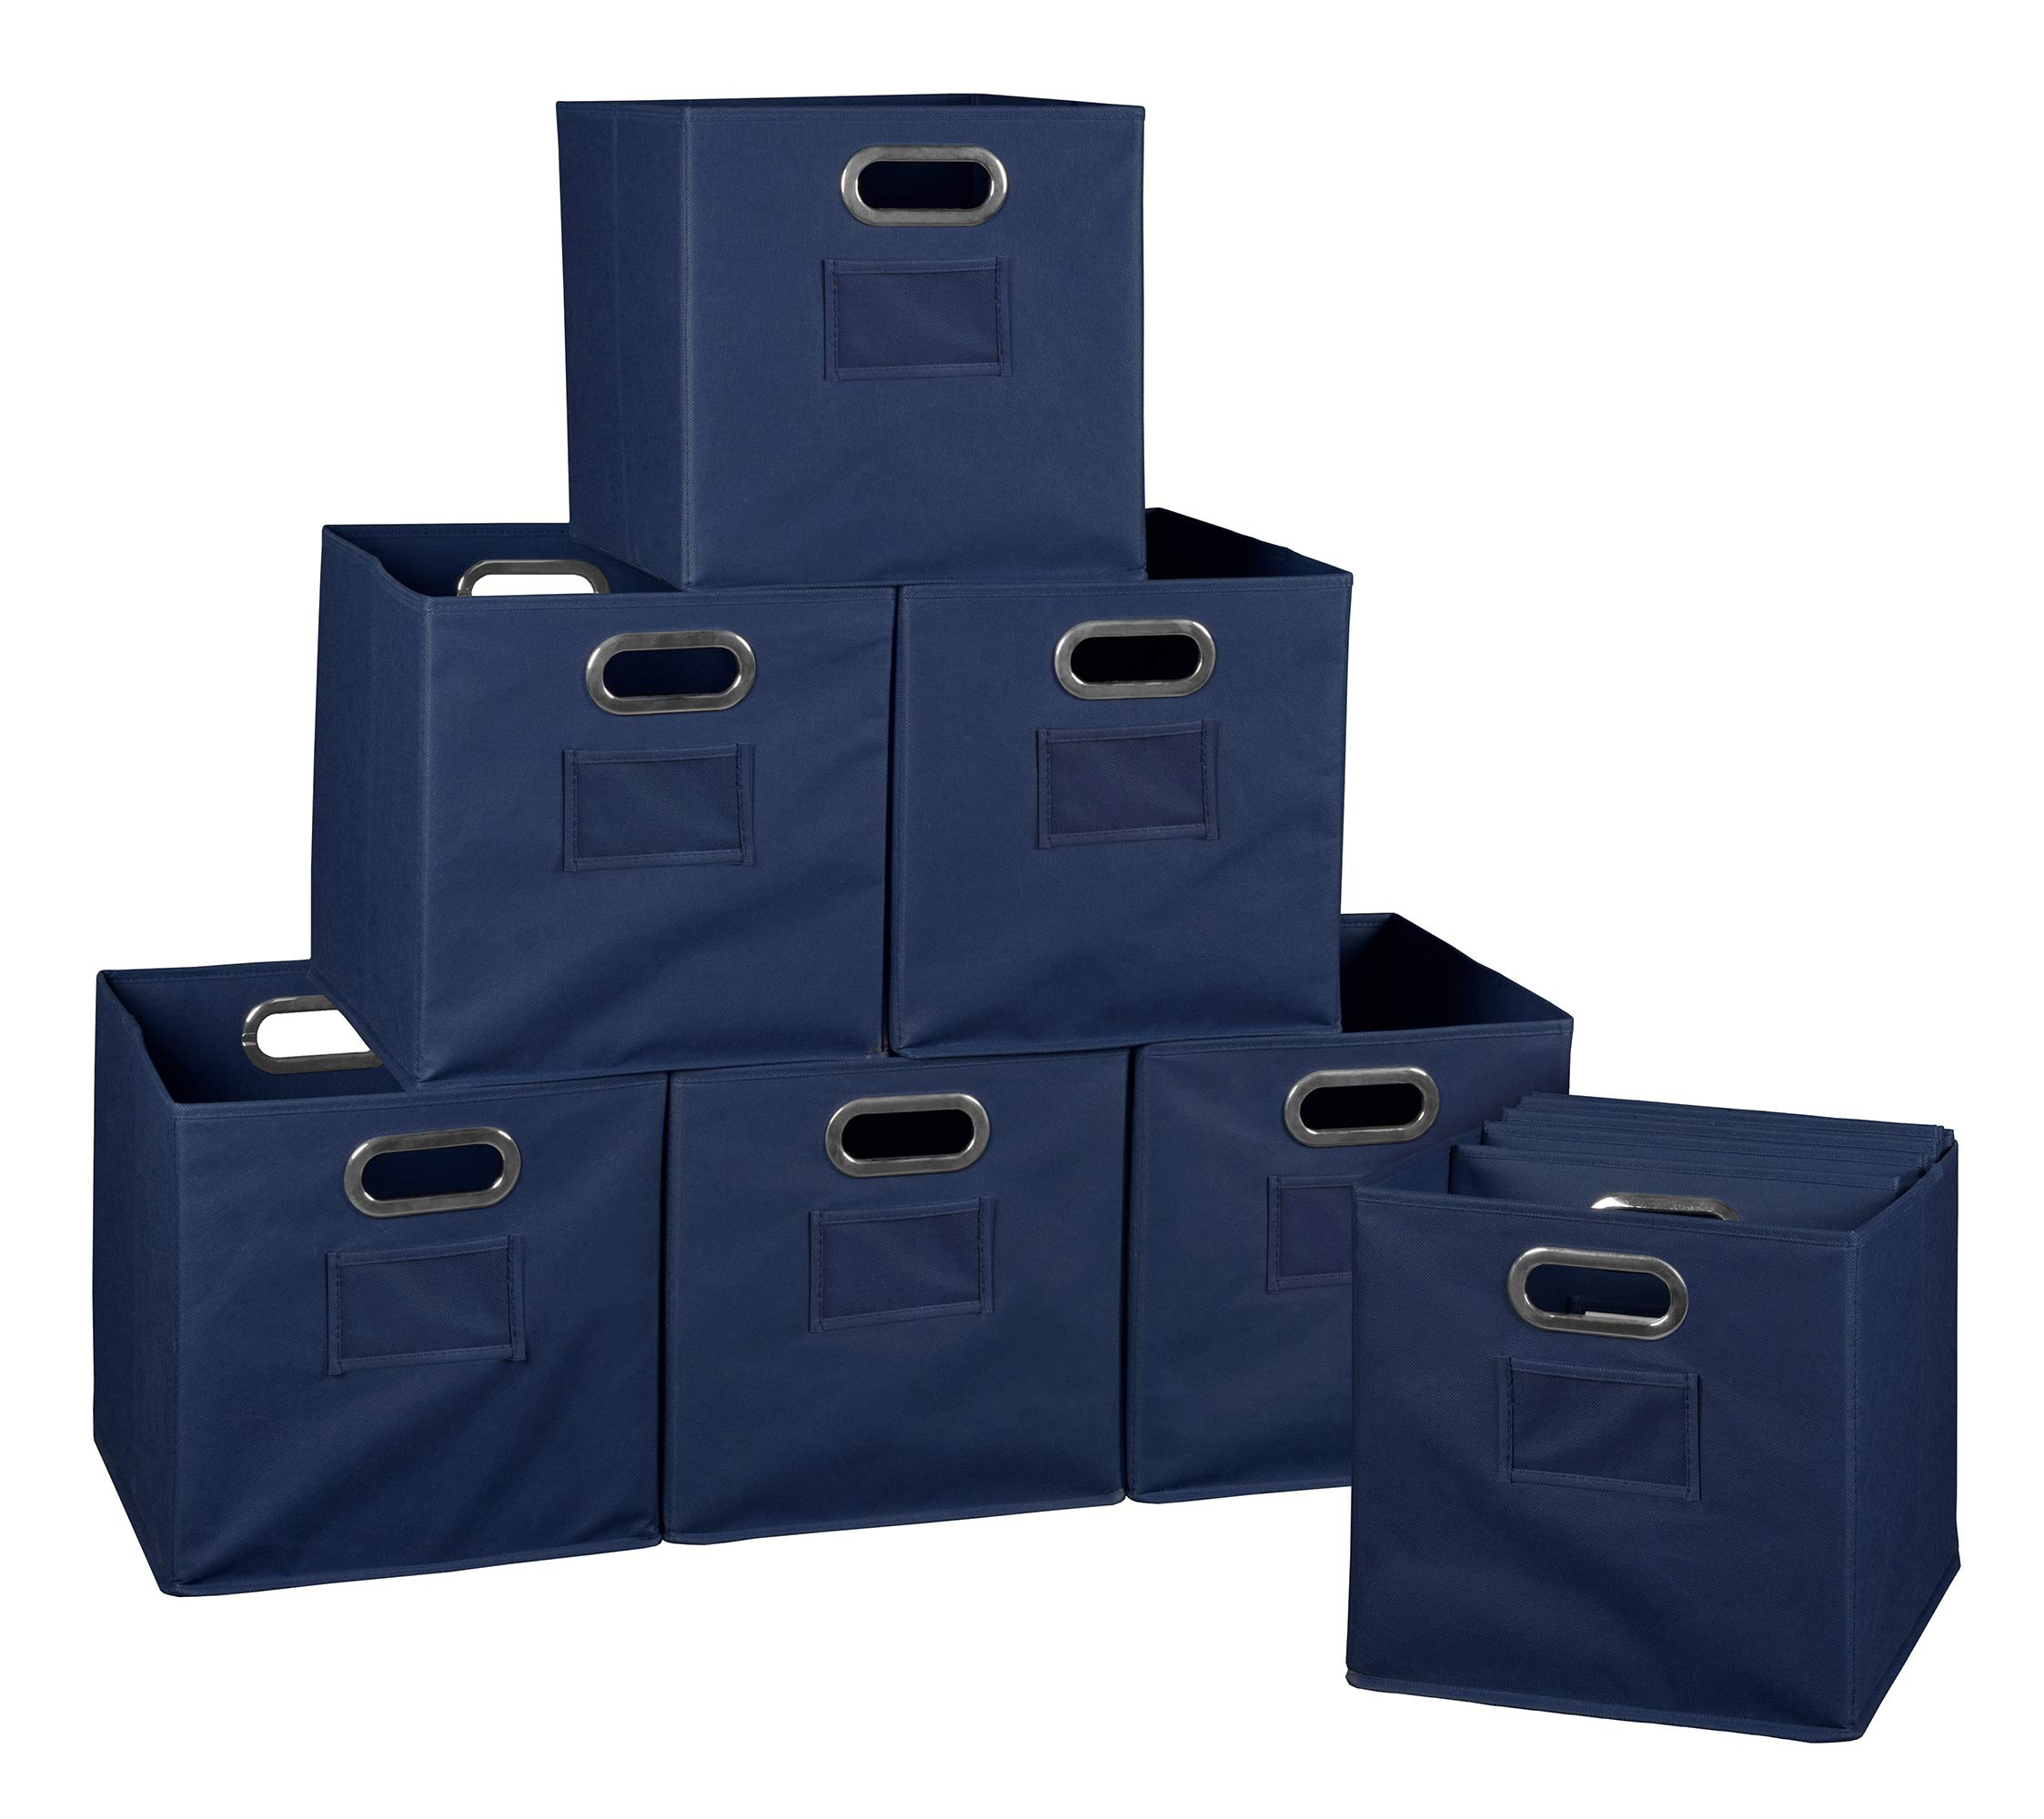 Niche A-FFCB12NV Cheer Home Foldable Fabric Bins Collapsible Cloth Cube Storage Basket, Set of 12, Navy Blue by Unknown